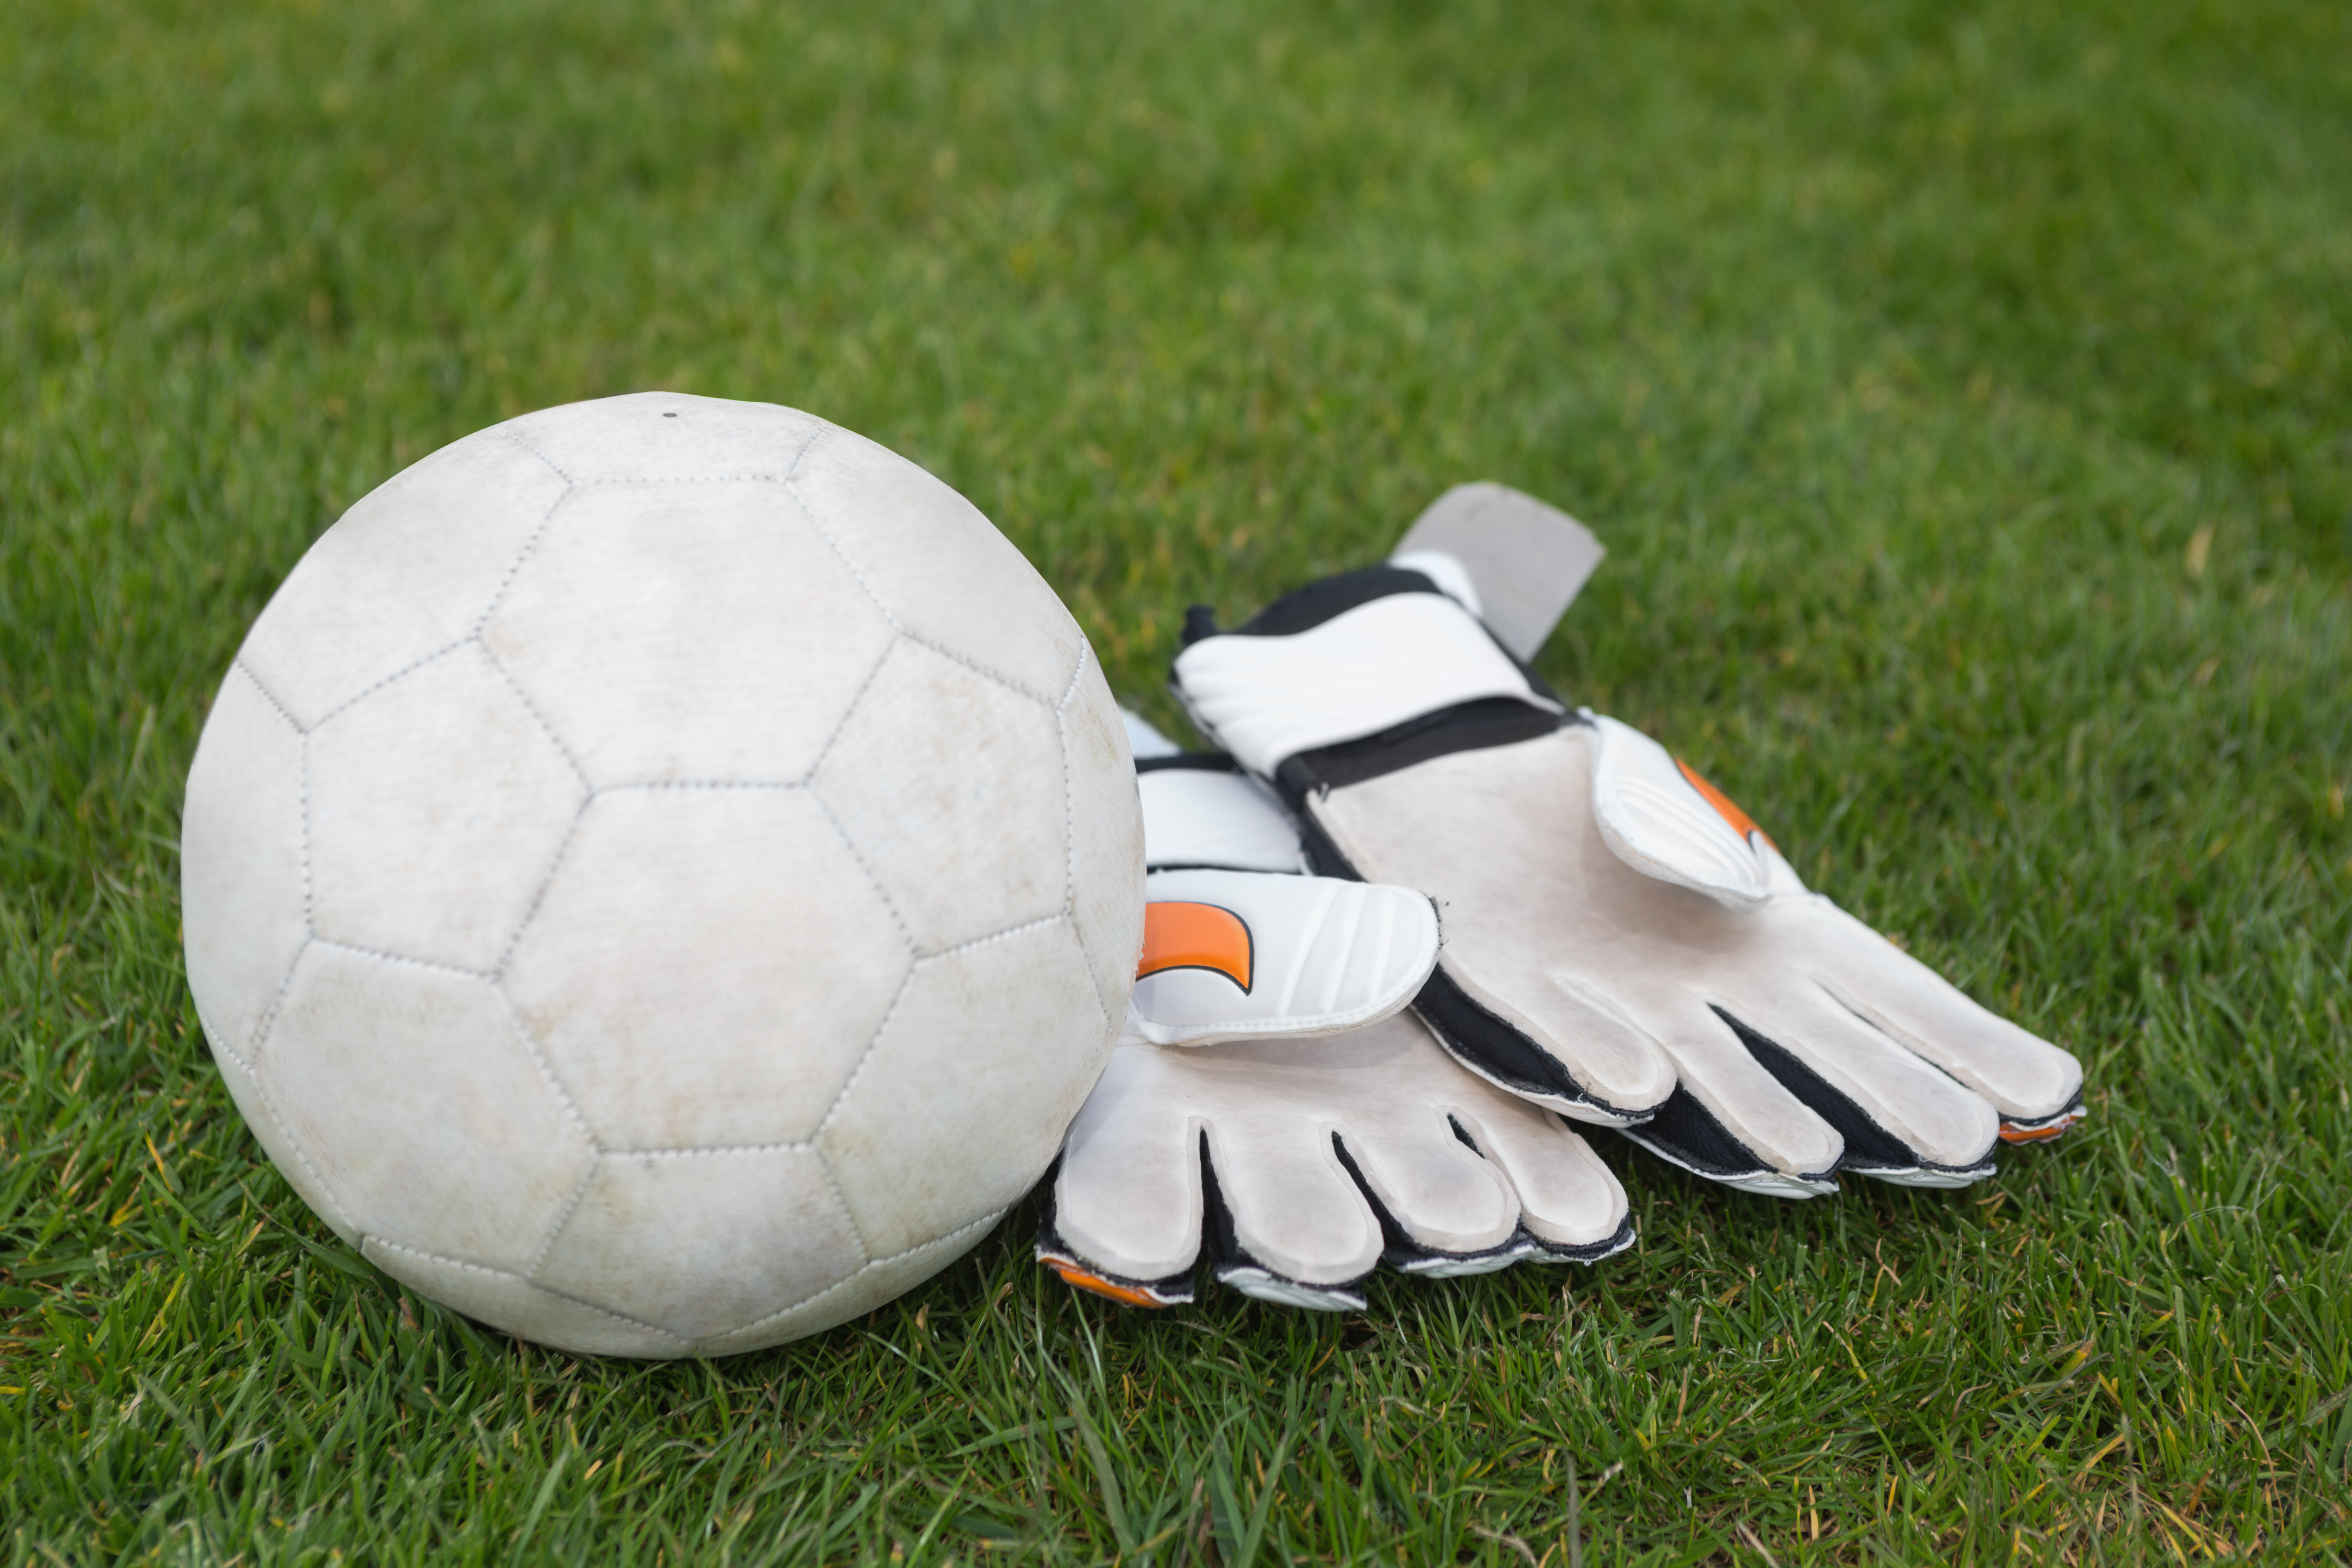 Goalkeeping gloves and football on pitch on a clear day